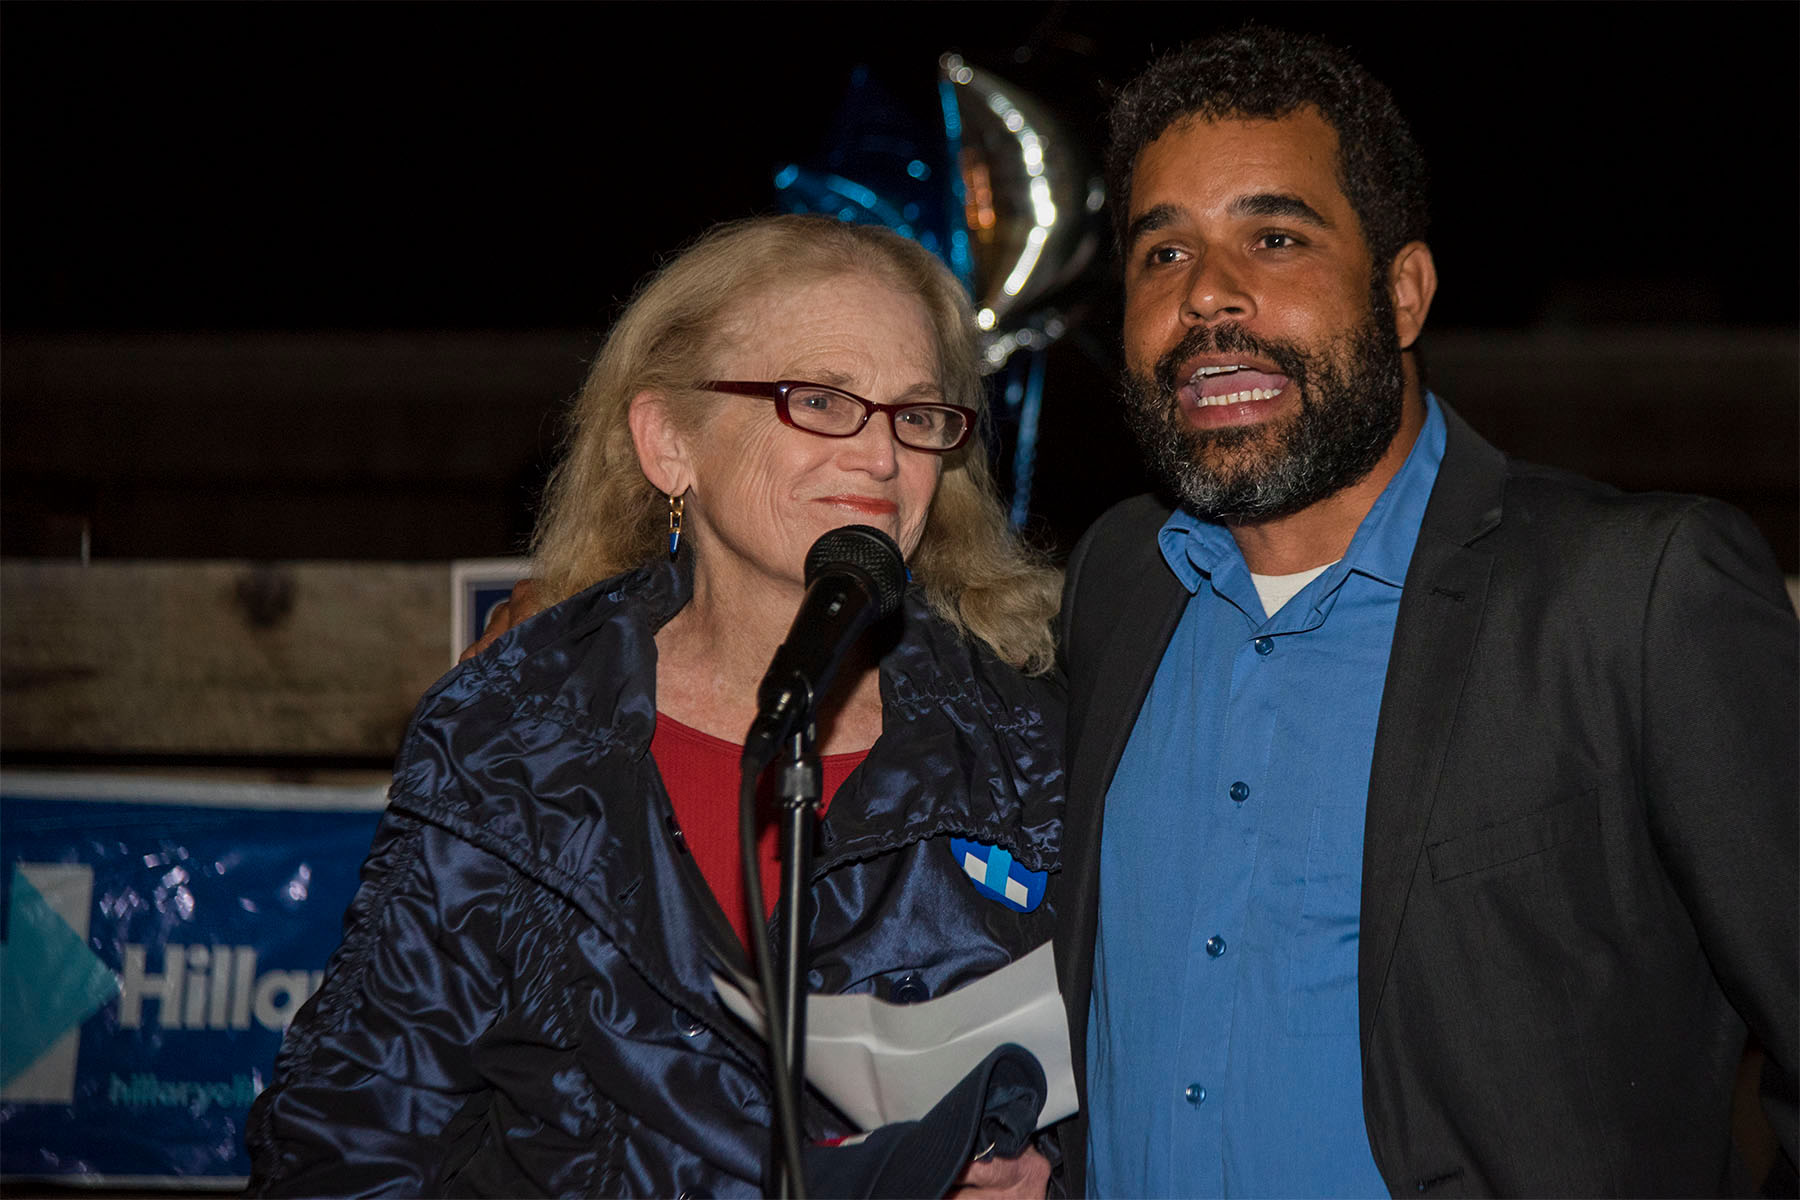 Susan Rose and Daraka Larimore-Hall talk about the future of the Democrat party in Santa Barbara after learning of Donald Trump winning the presidency on Tuesday, Nov. 8, at The Mill in Santa Barbara. Democrats won all the major local elections.